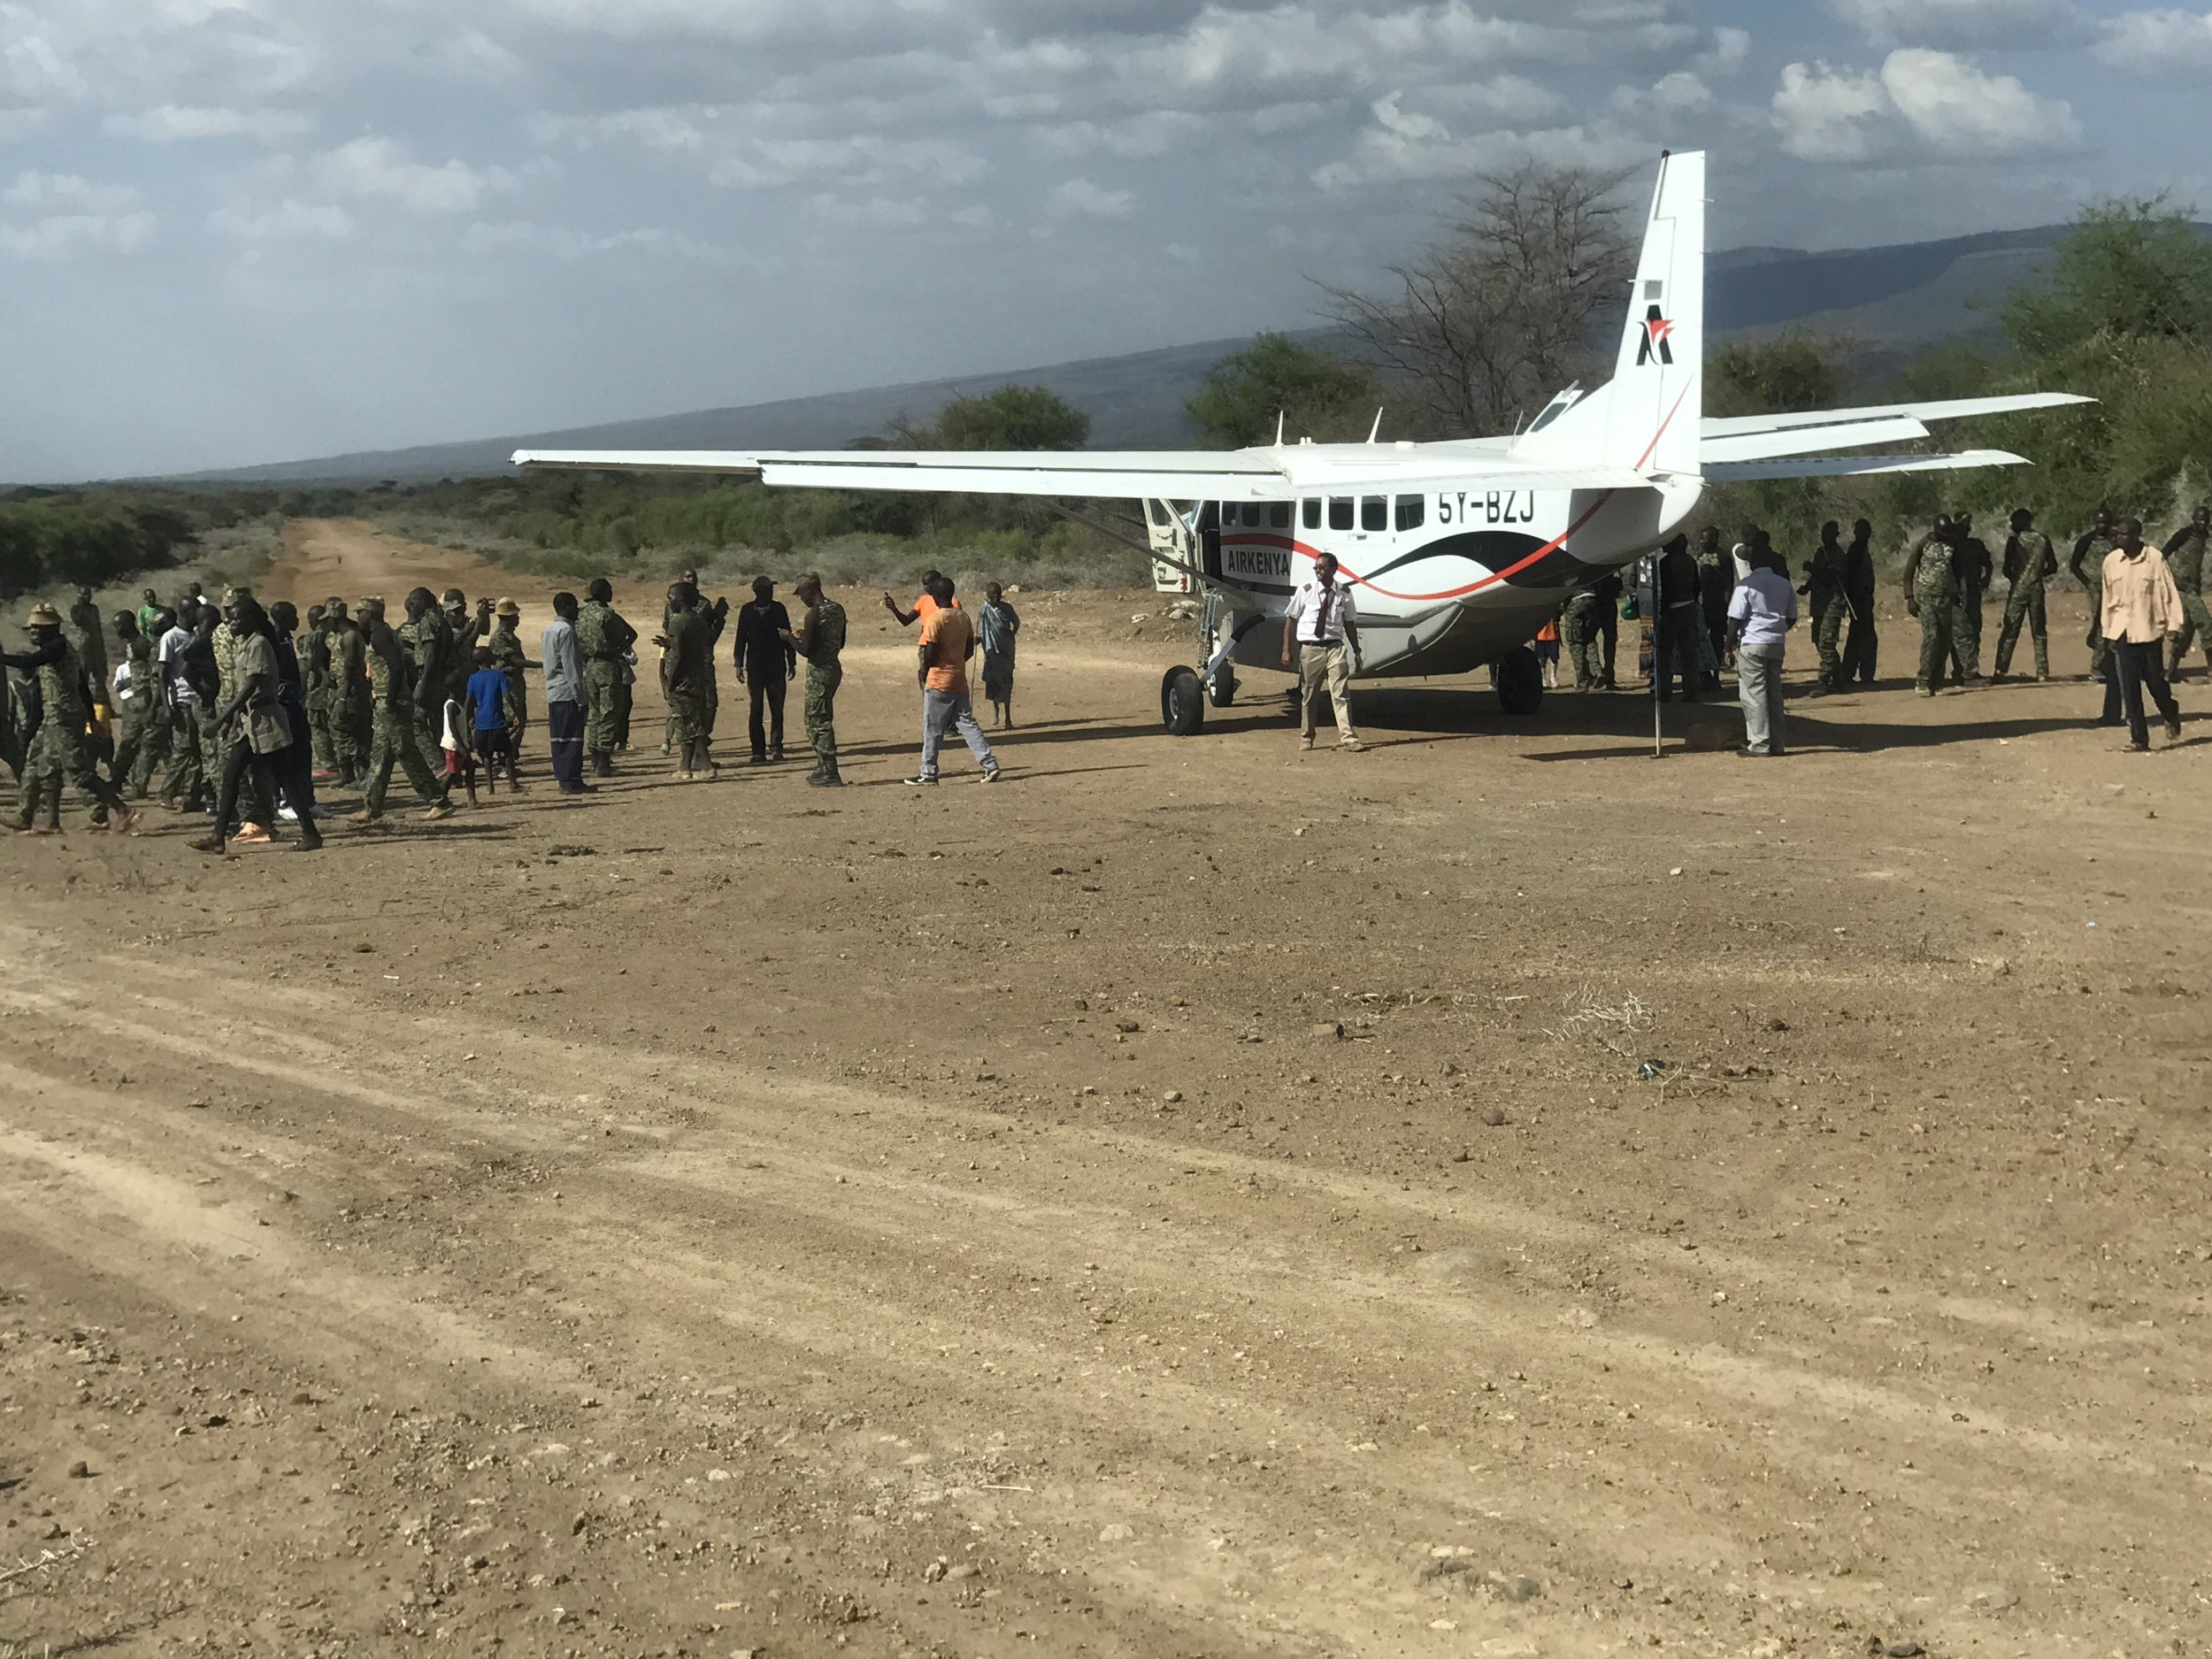 The Kenyans seeing us off at the plane.